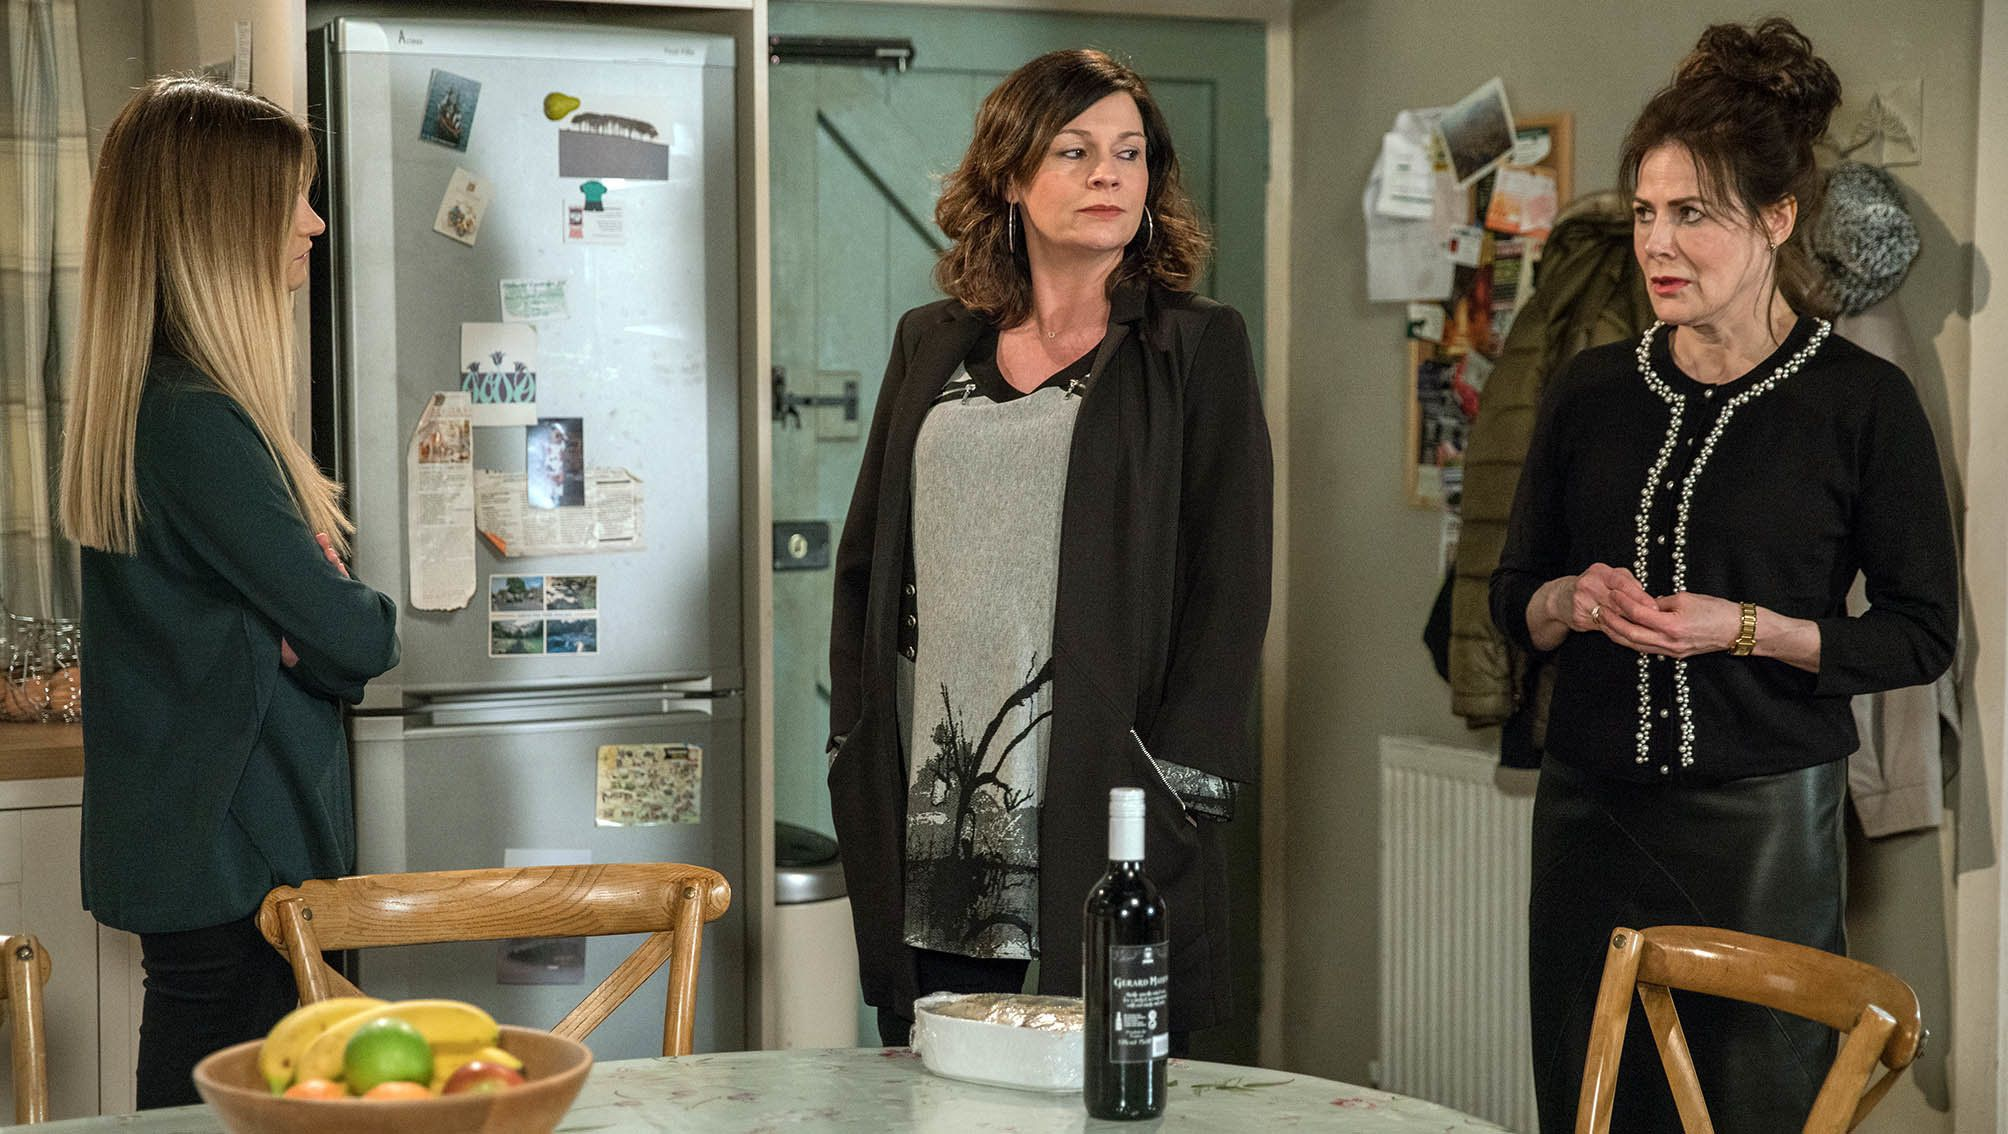 In recent weeks, Chas has been dealing with her mother's